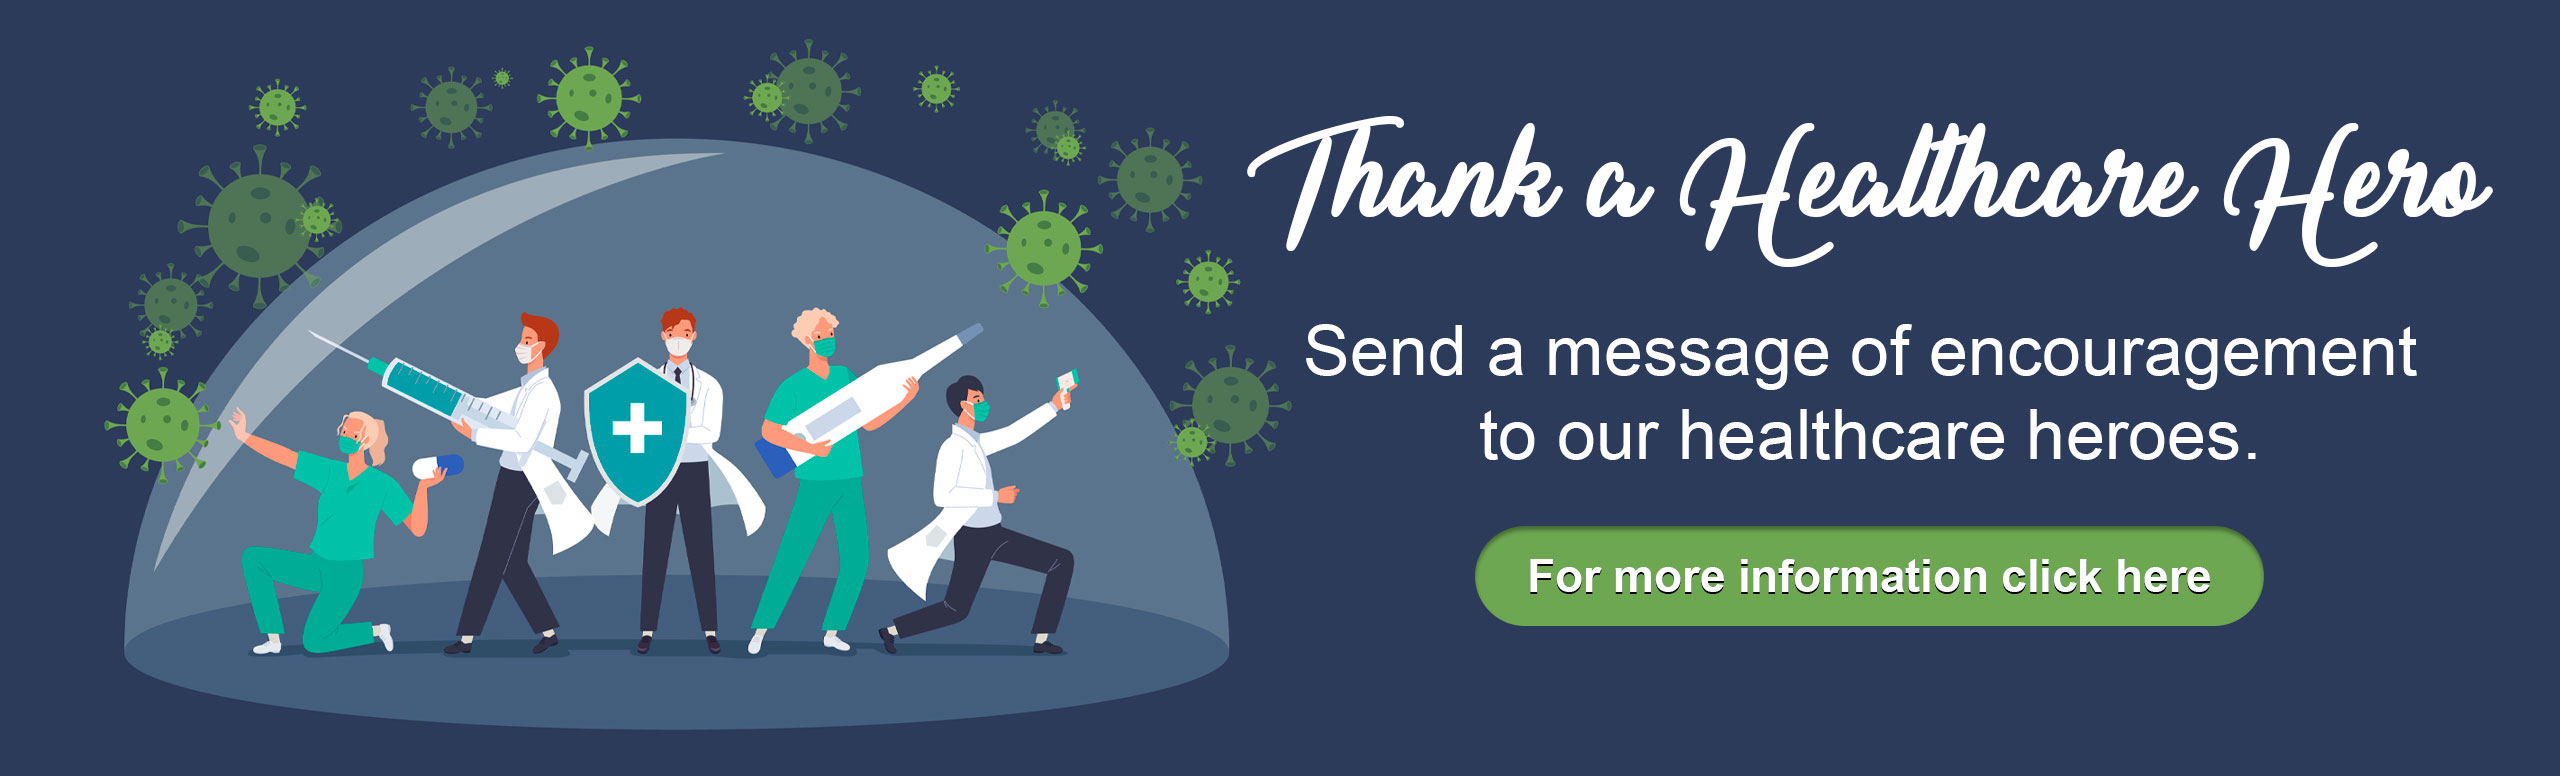 Thank a Healthcare hero. Send a message of encouragement to our healthcare heroes. For more information click here.